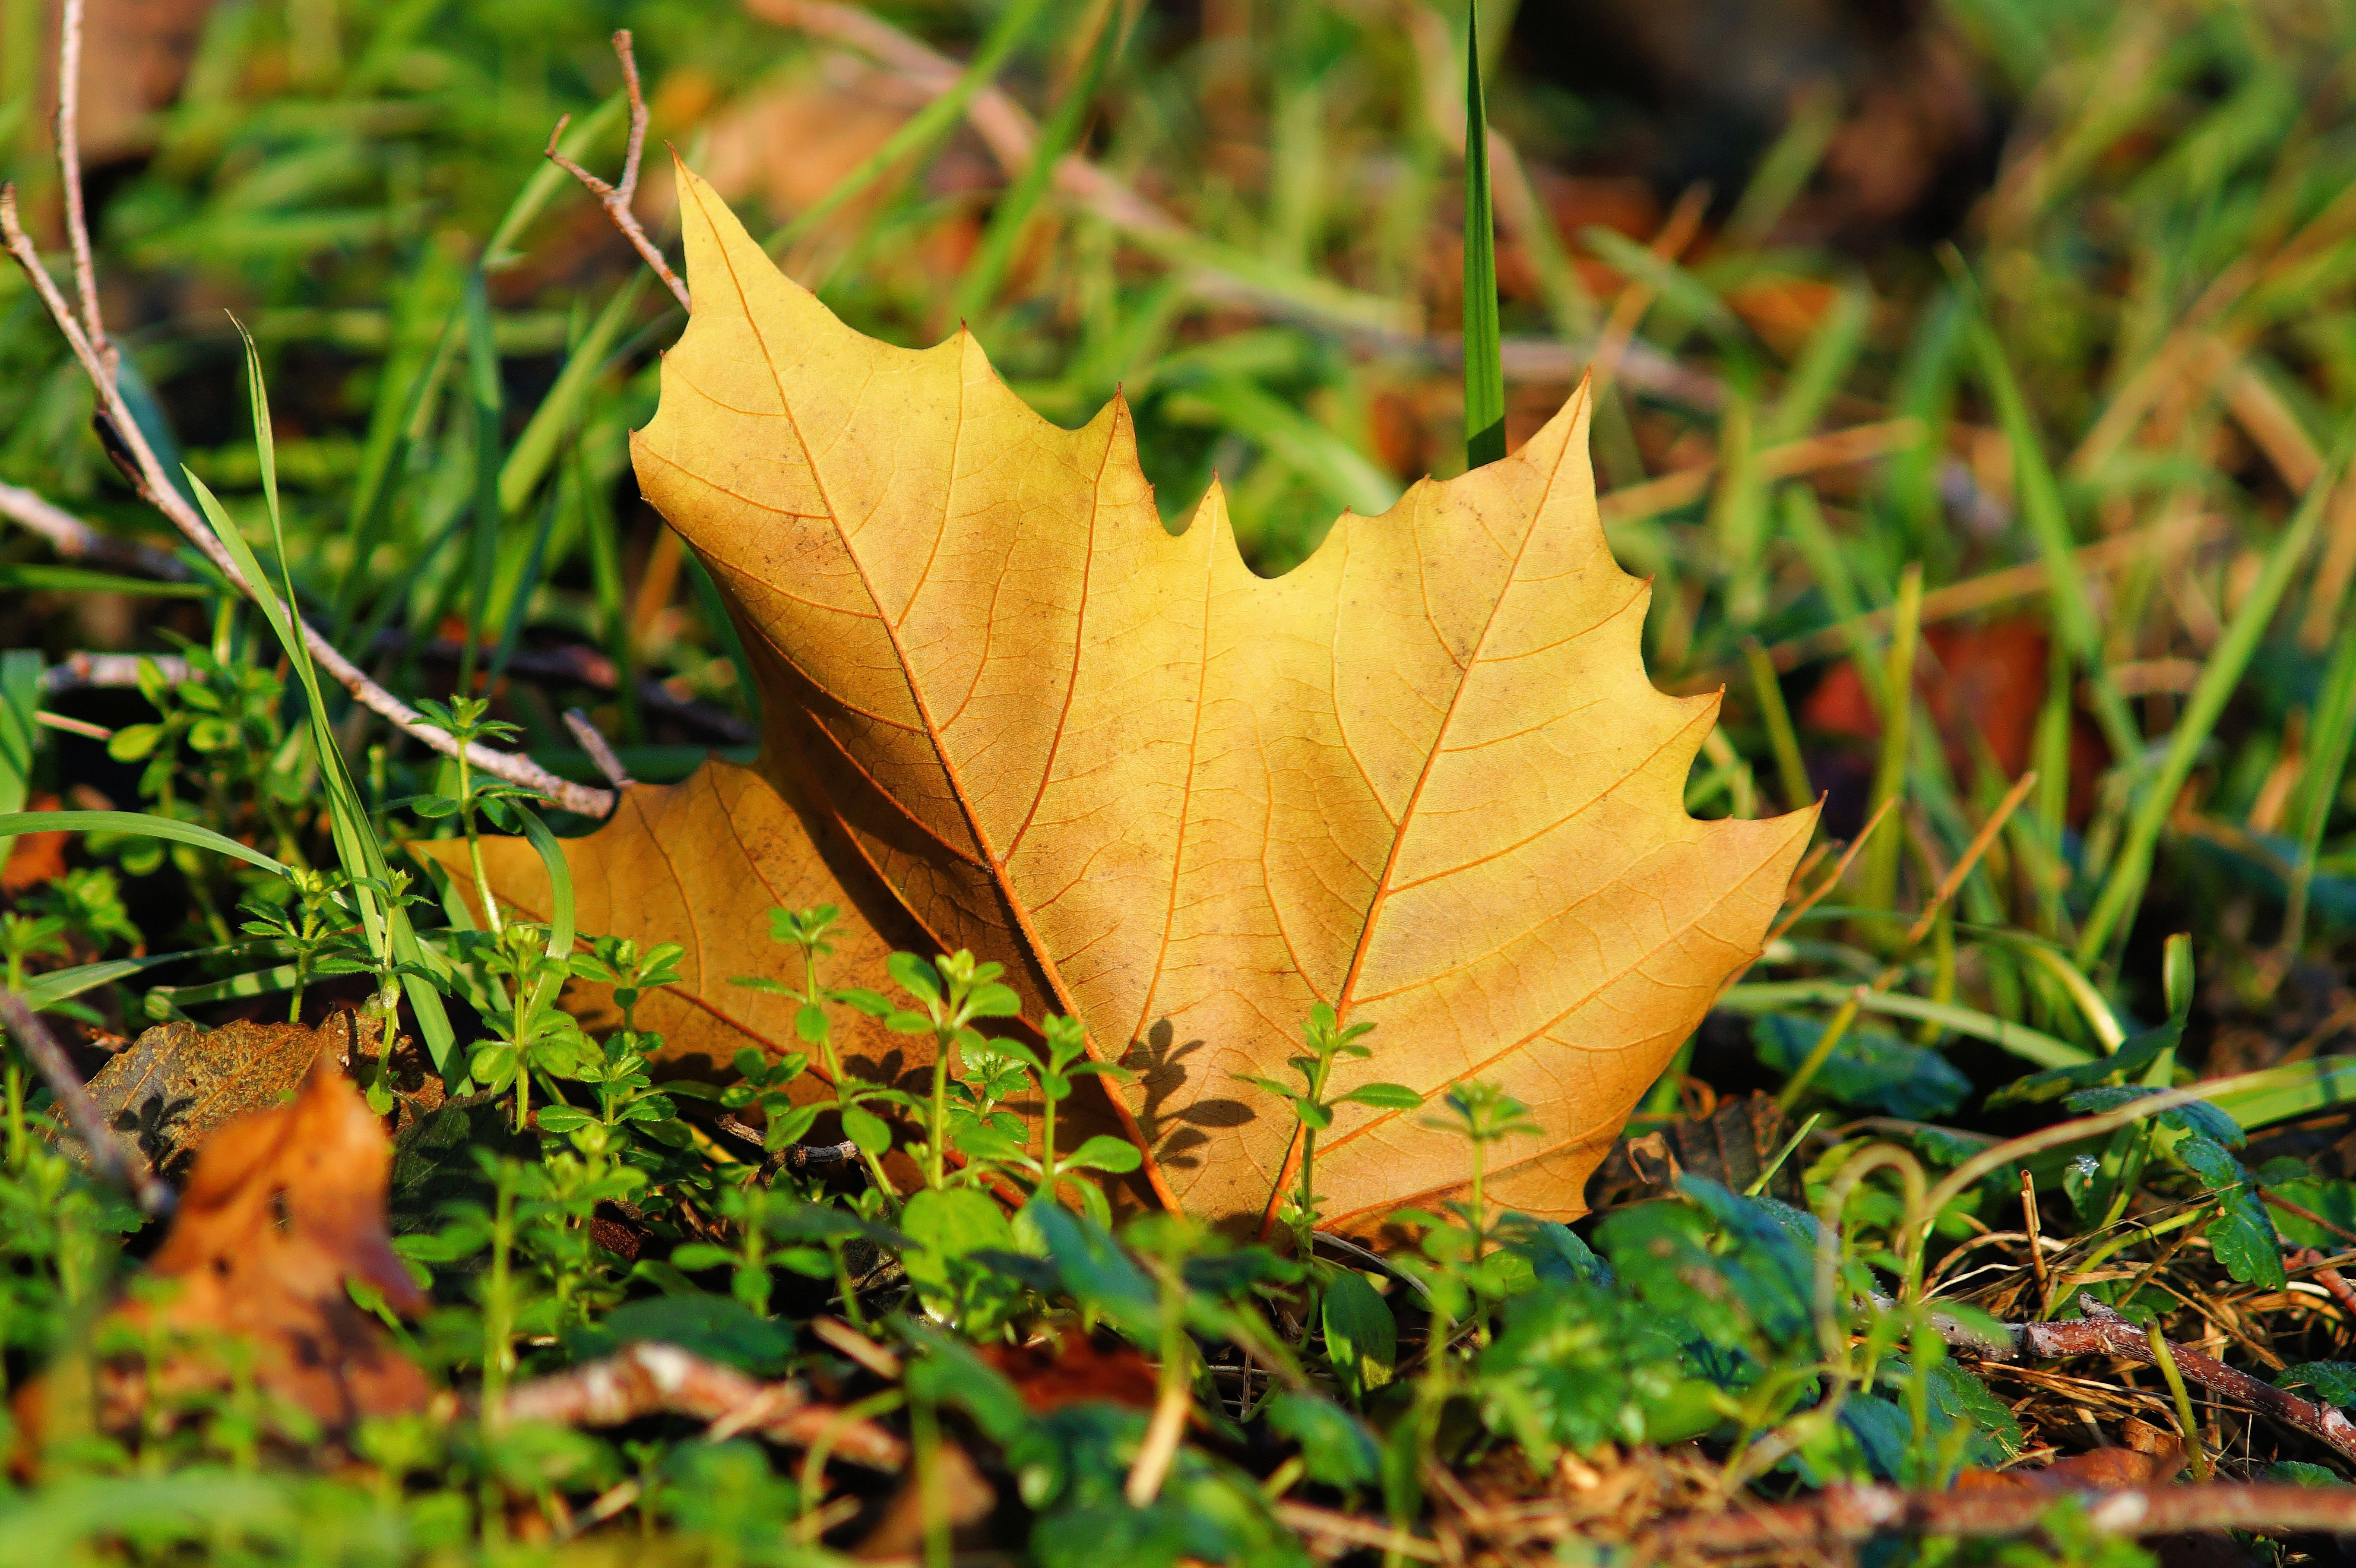 69209 download wallpaper Nature, Sheet, Leaf, Maple, Grass screensavers and pictures for free